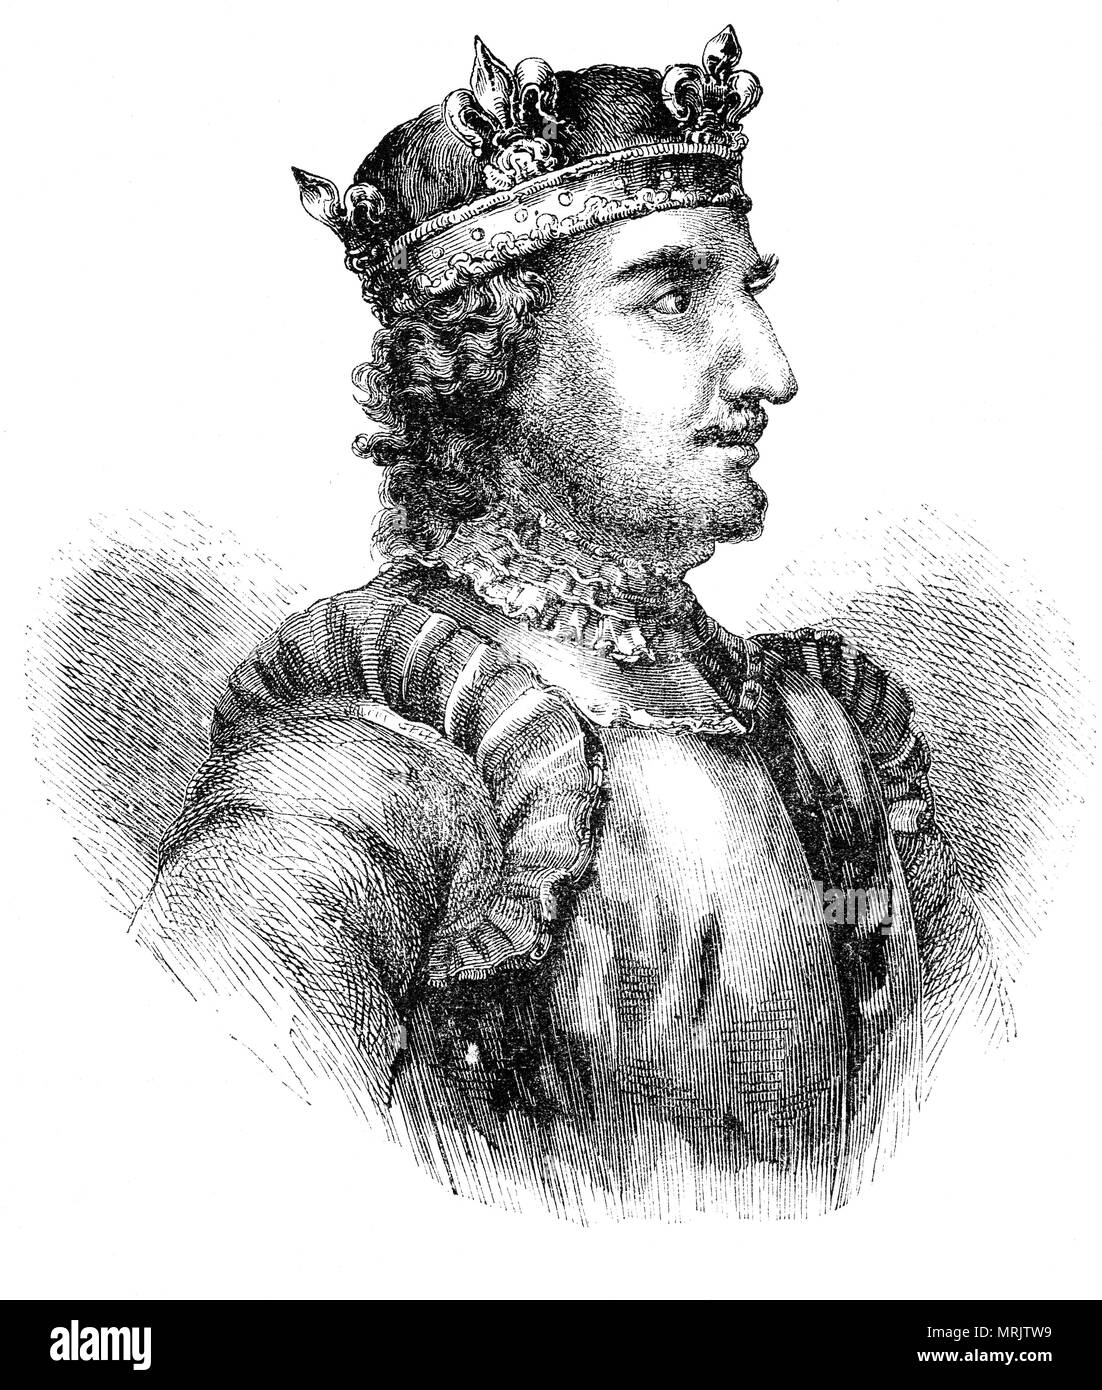 Stephen of Blois, (1092/6–1154) was King of England from 1135 to his death and Duke of Normandy. His reign was marked by the Anarchy, a civil war with his cousin and rival, the Empress Matilda. Stephen narrowly escaped drowning with Henry I's son, William Adelin, in the sinking of the White Ship in 1120 which left the succession of the English throne open to challenge. When Henry I died in 1135, Stephen quickly crossed the English Channel and took the throne. - Stock Image